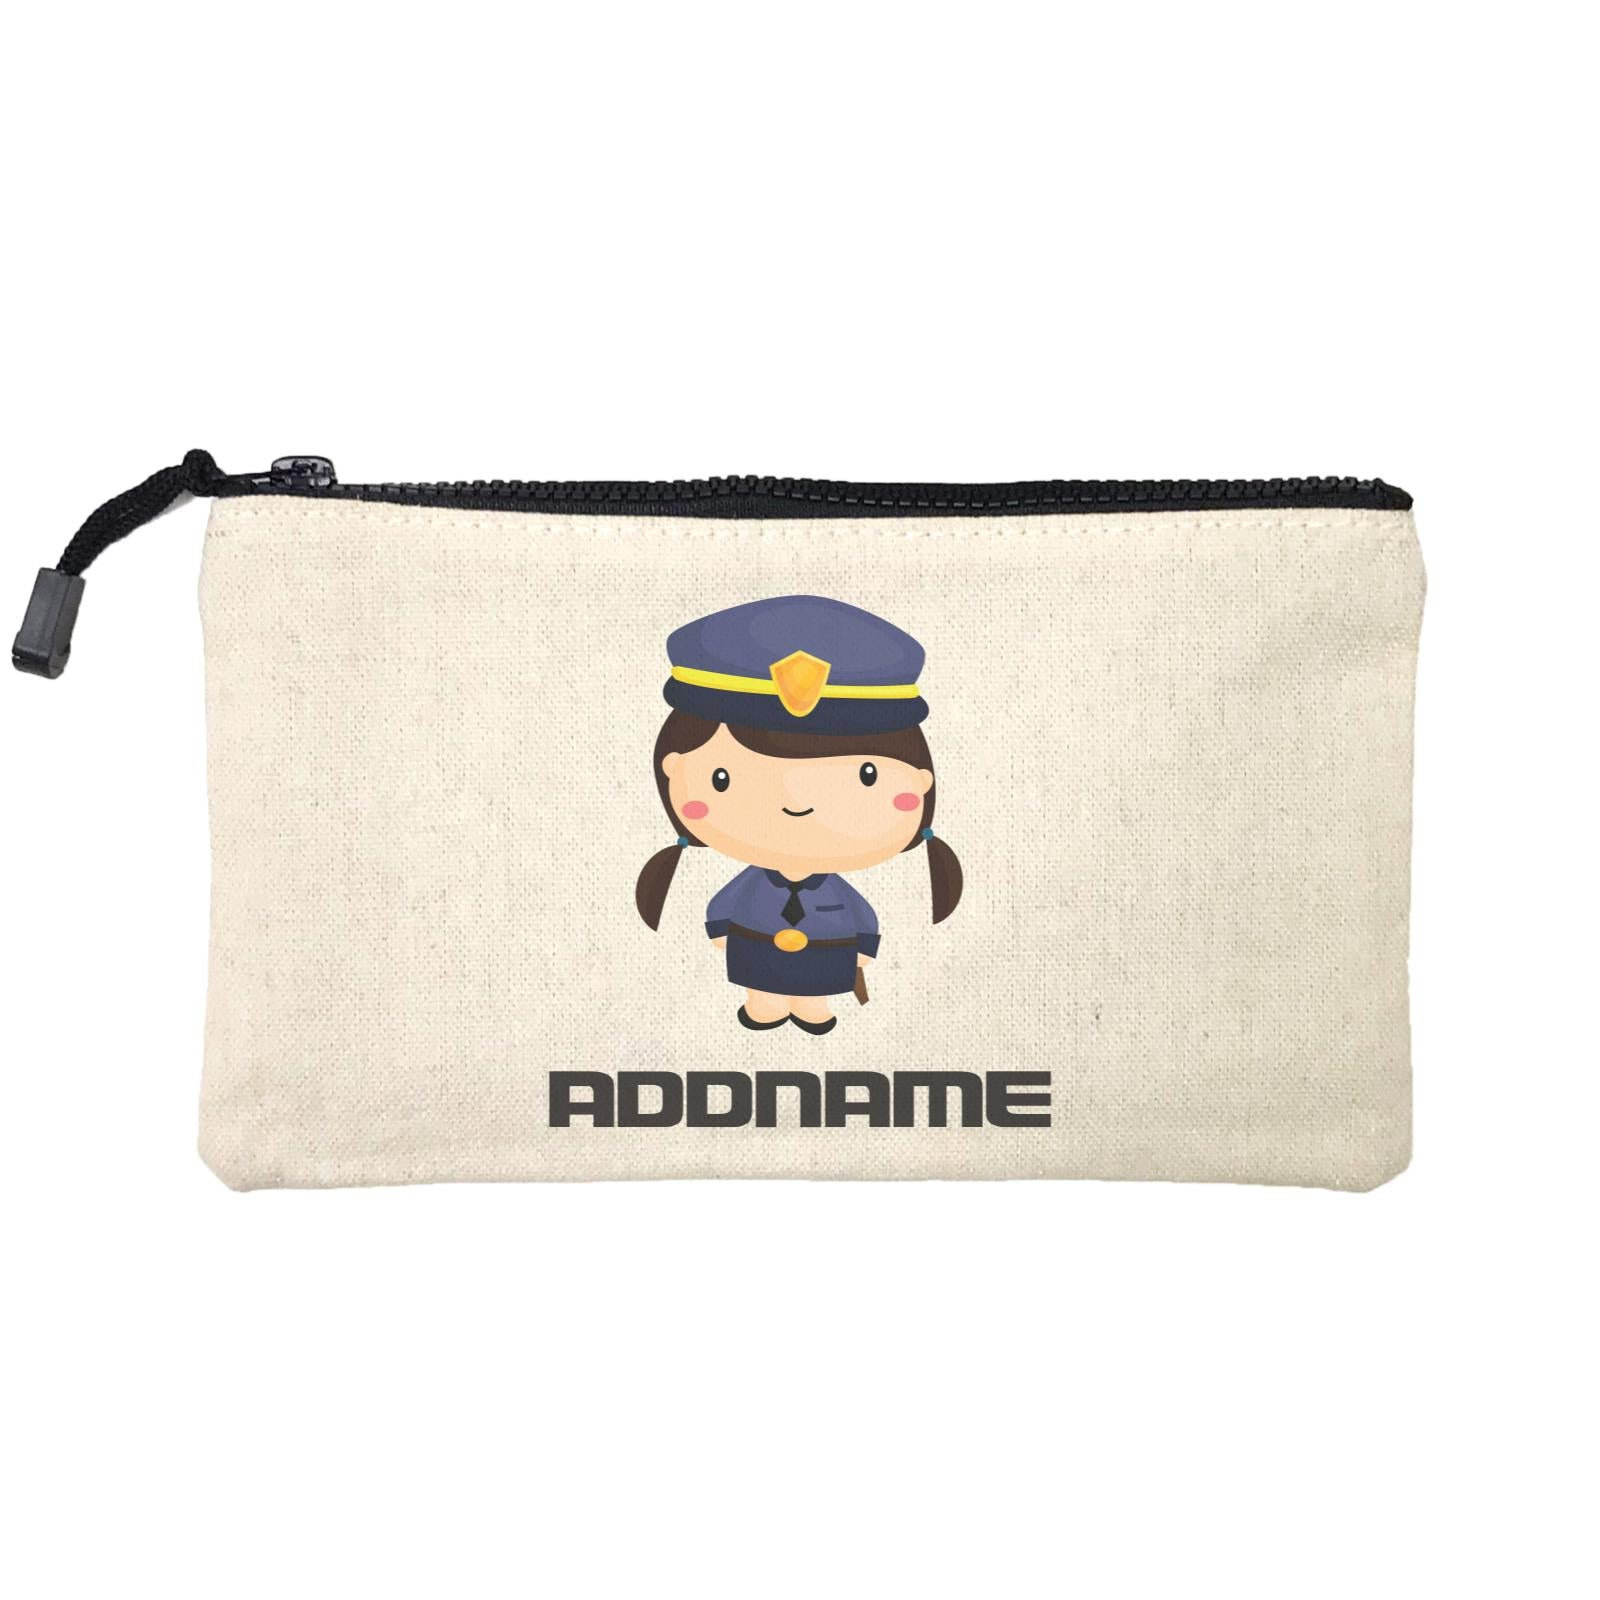 Birthday Police Officer Long Twin Pony Tails Girl In Suit Addname Mini Accessories Stationery Pouch